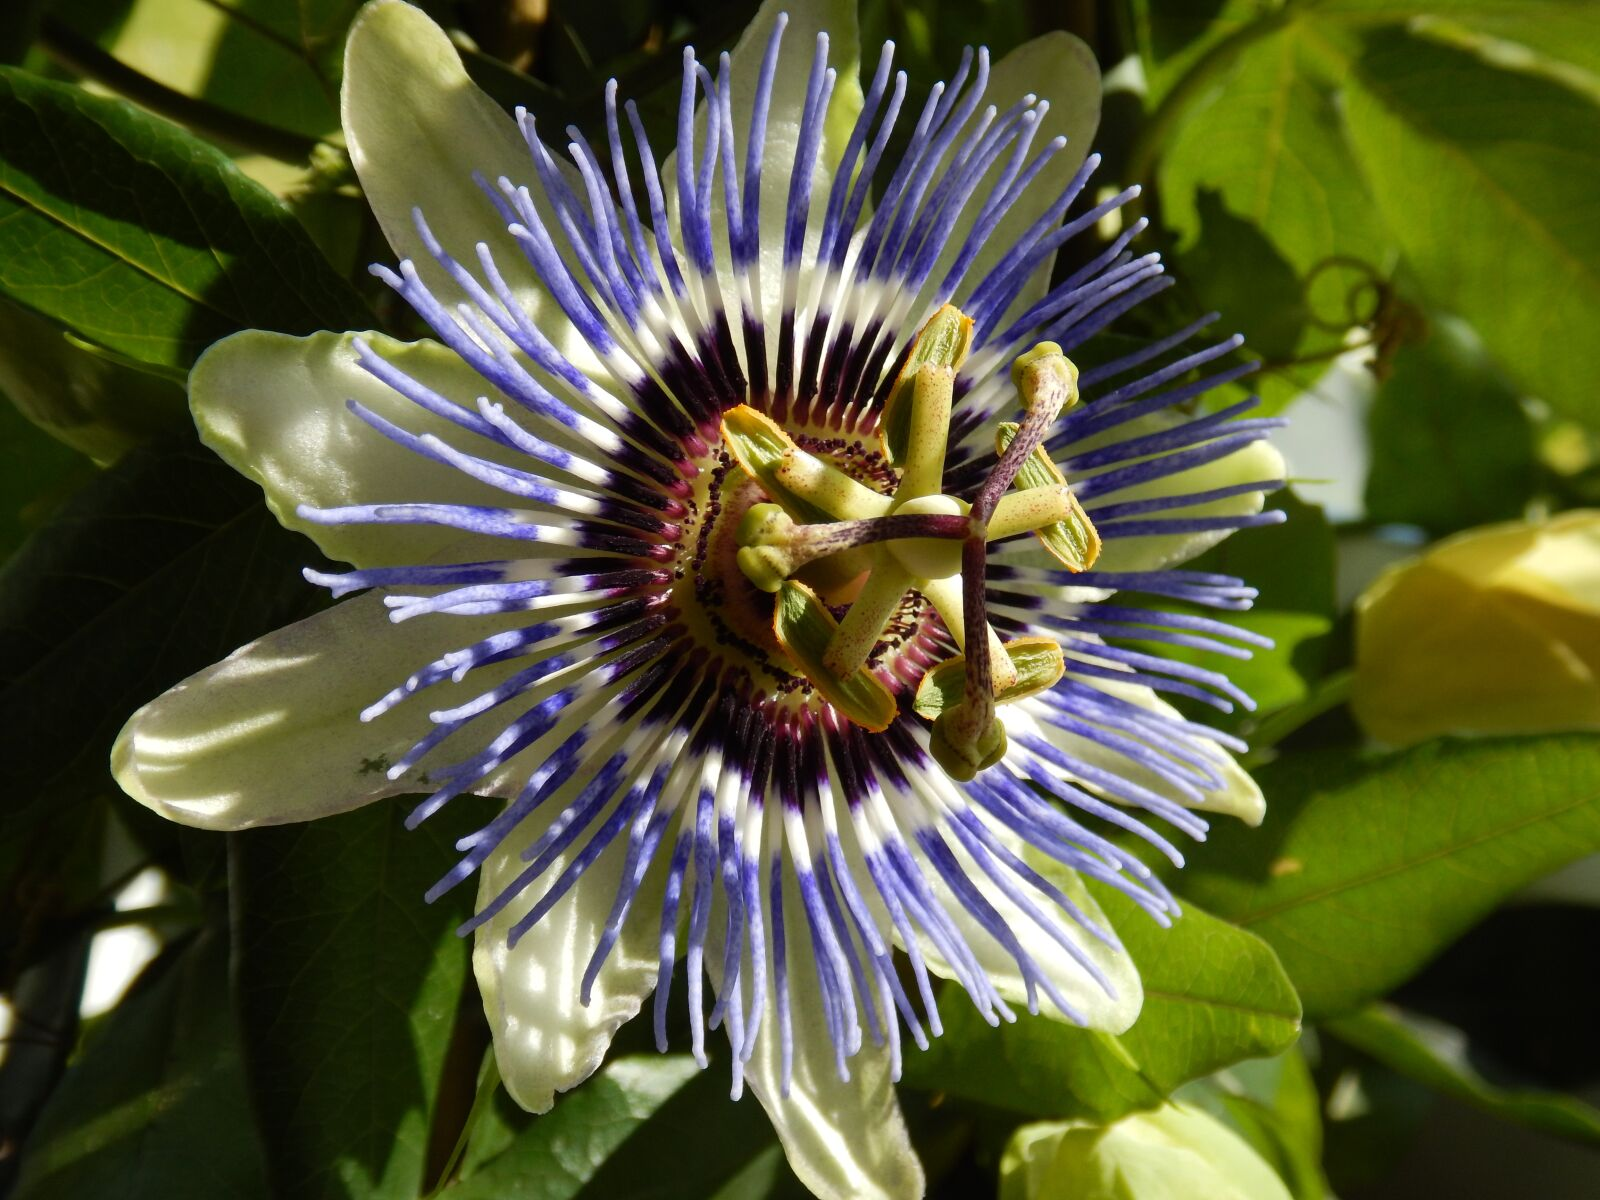 """Nikon Coolpix AW120 sample photo. """"Passion flower, close up"""" photography"""